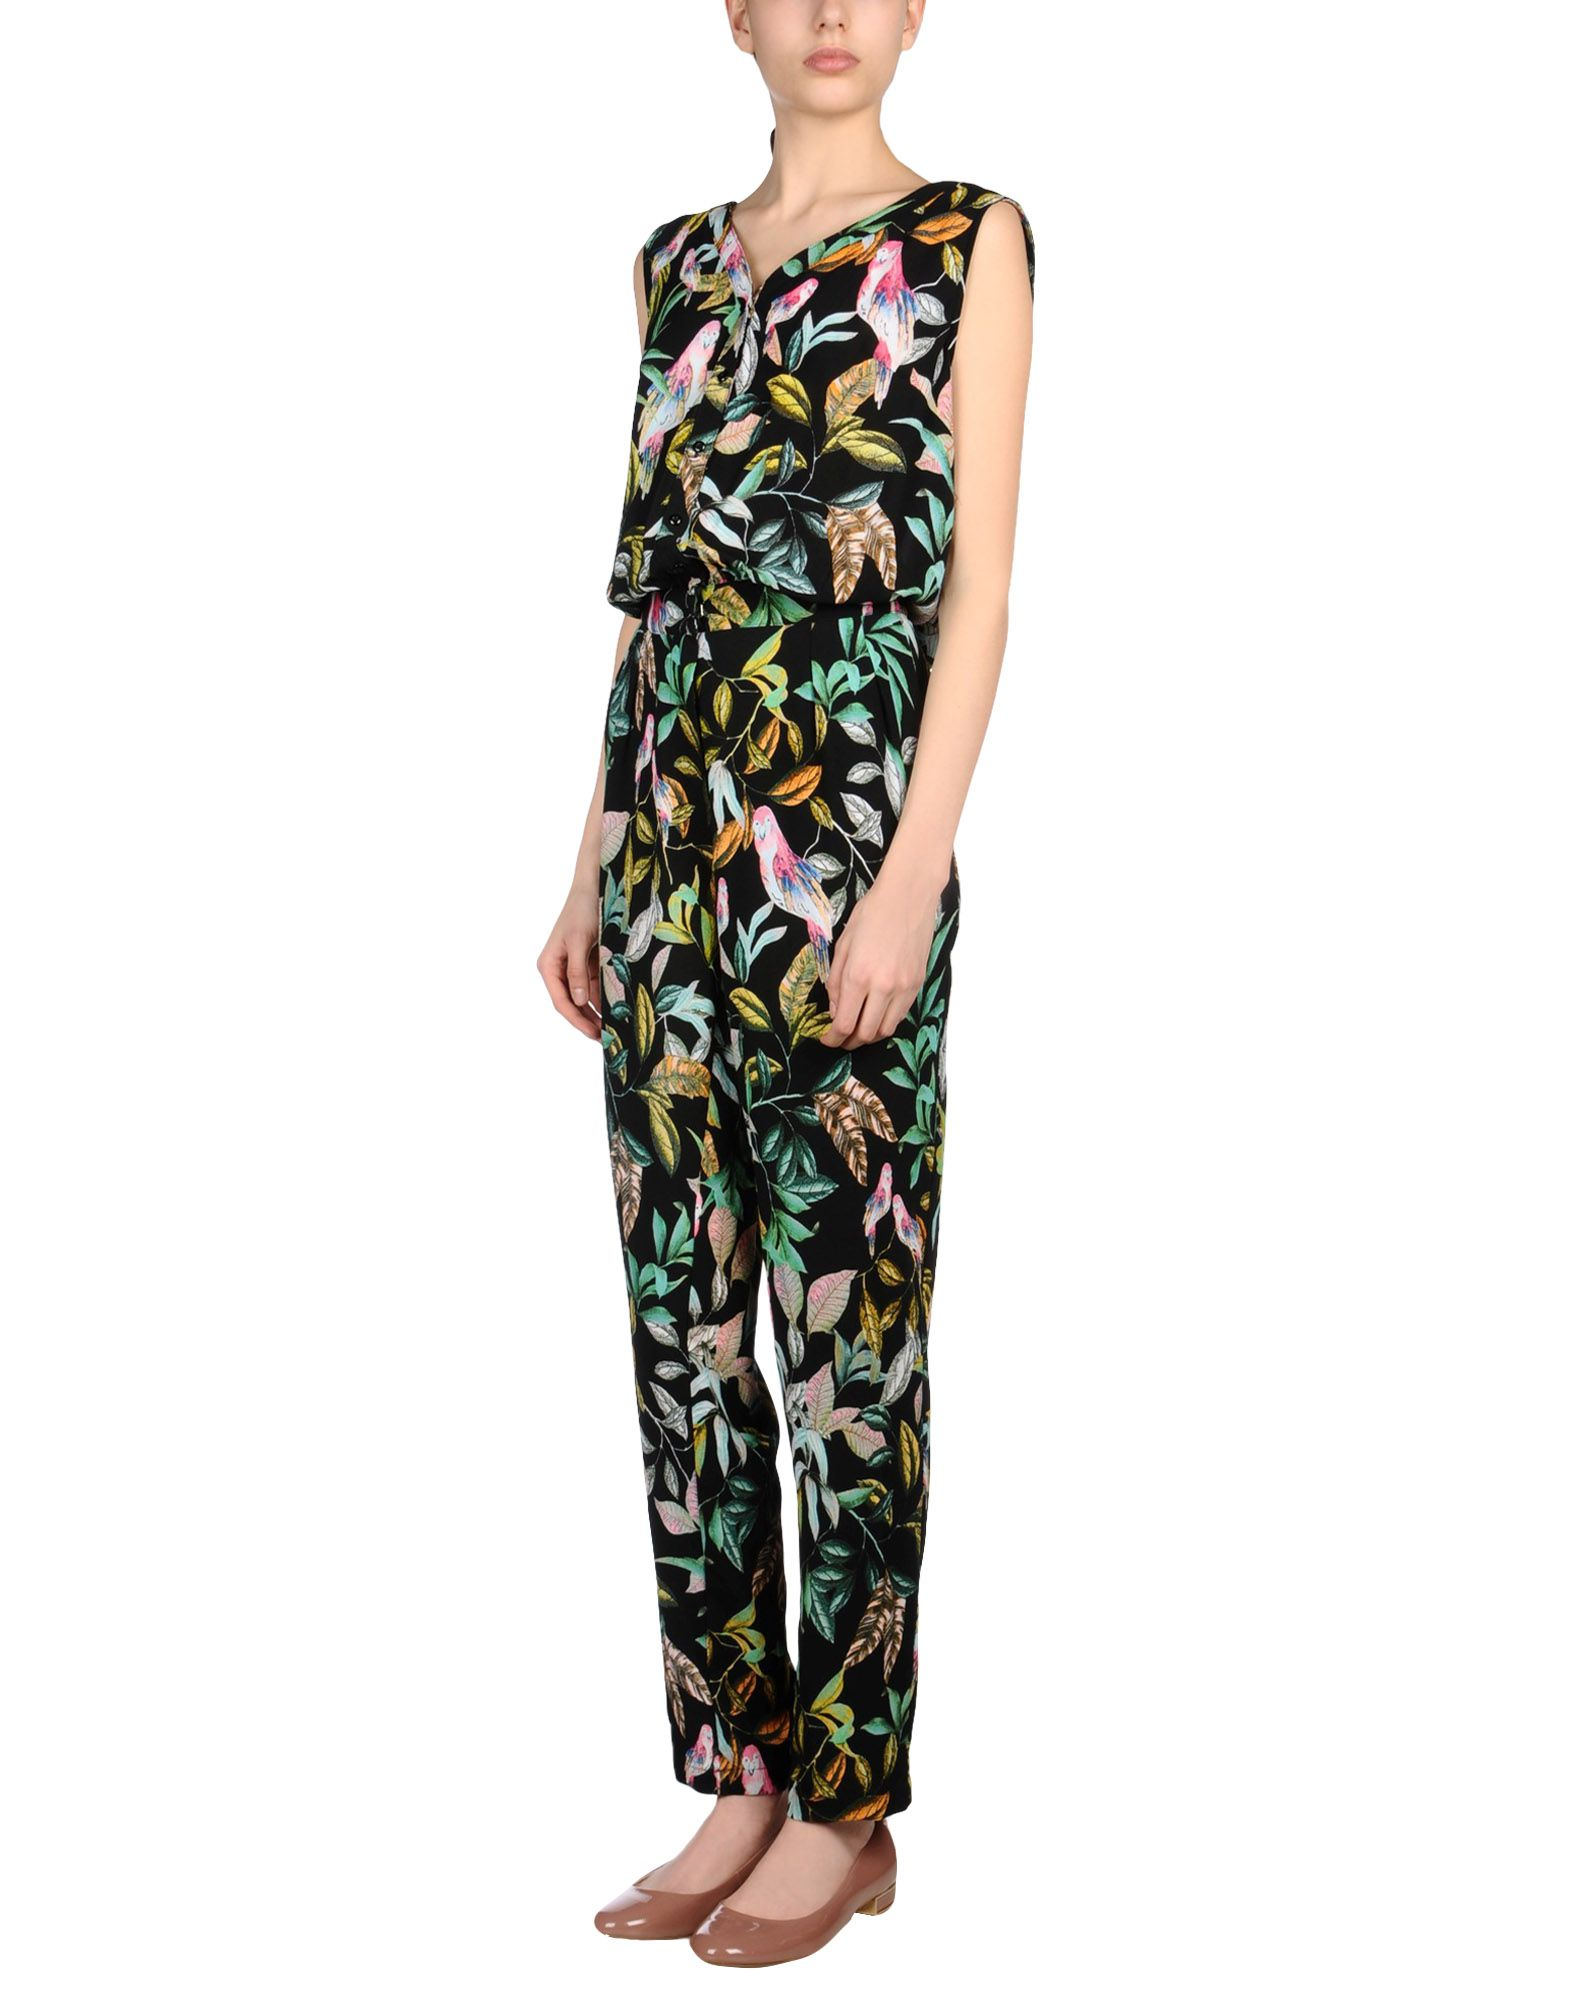 anonyme designers female anonyme designers jumpsuits